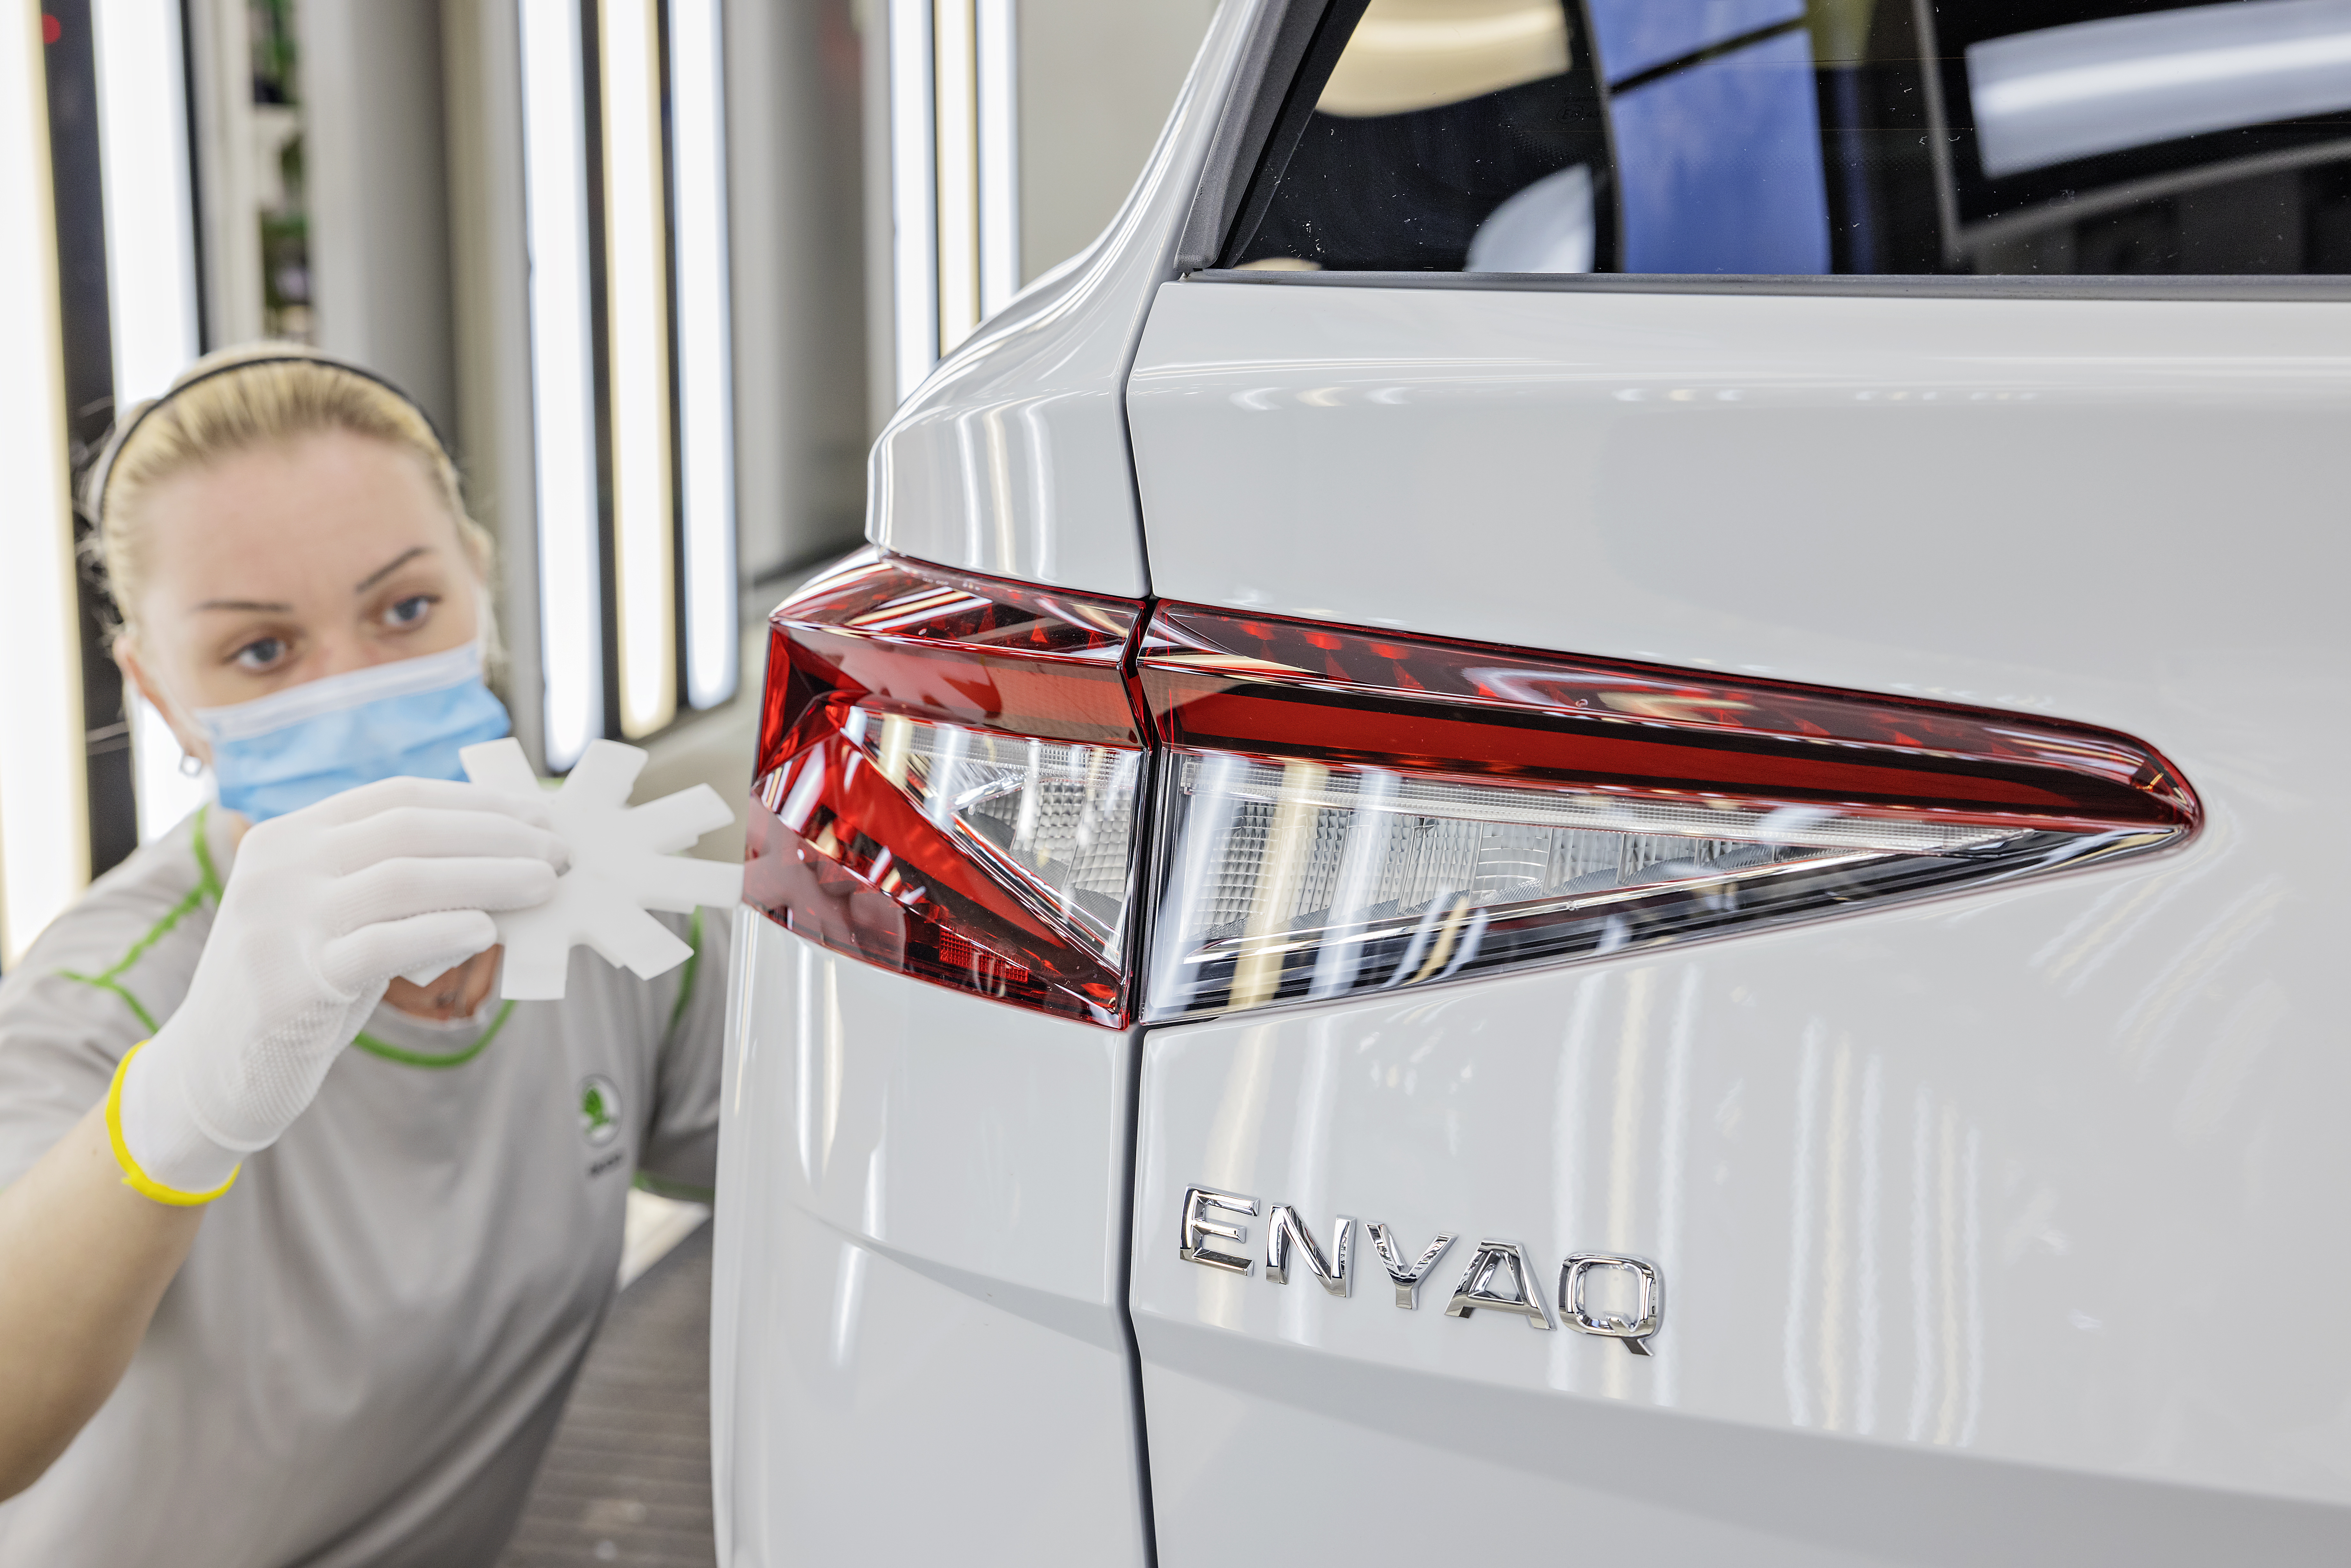 SKODA AUTO produced more than 750,000 vehicles at its Czech plants in 2020 despite COVID-19 pandemic - Image 1